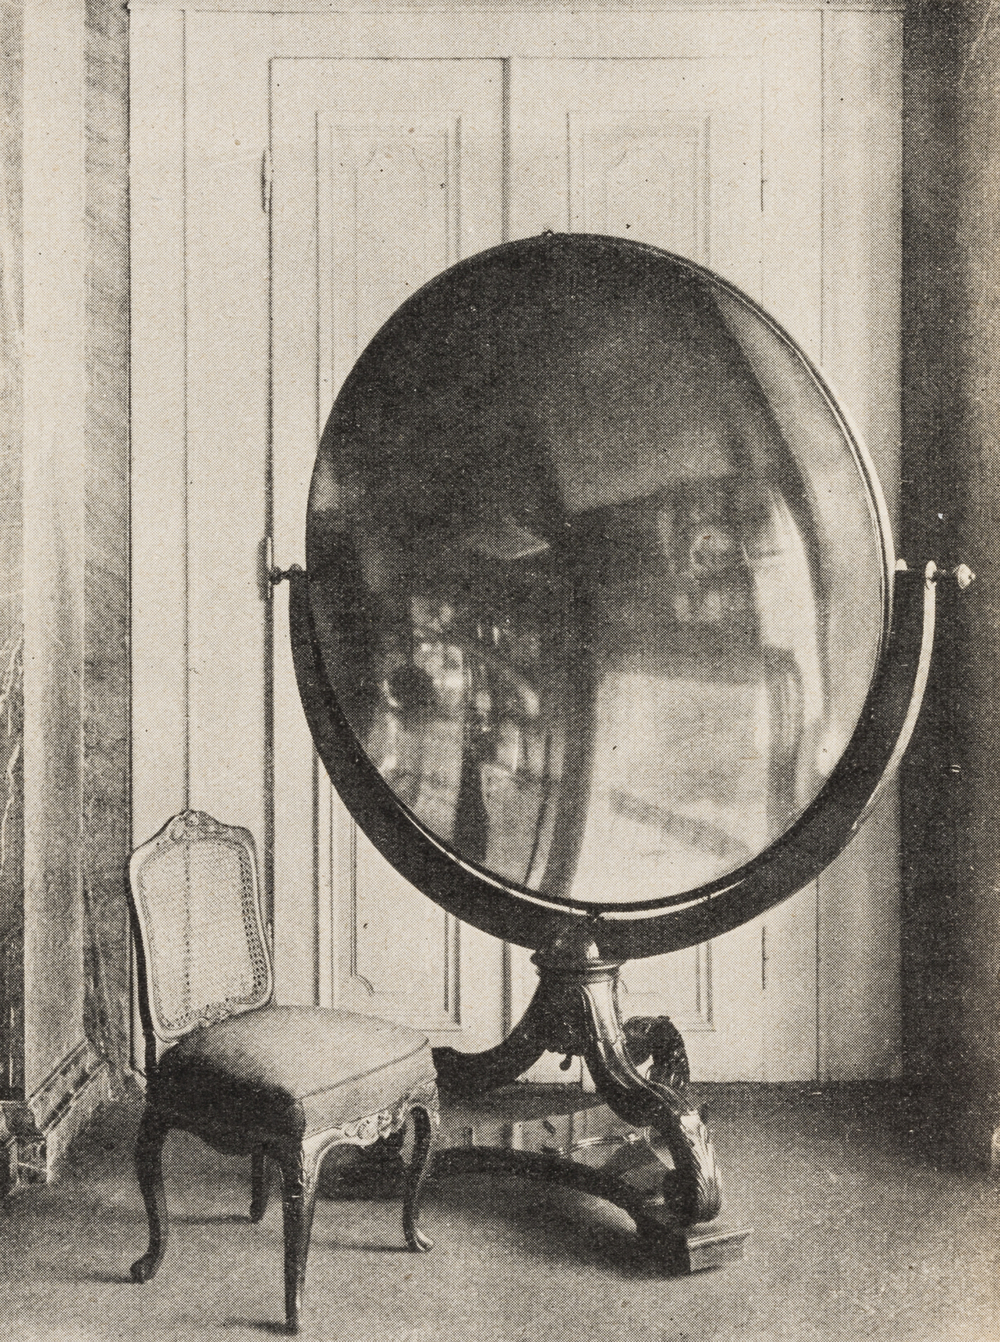 Tschirnhaus' burning lens, made in 1686, photograph from 1926  ©  Der Goldmacher, Joh. Fr. Böttger , Eugen Kalkschmidt, Died & Co, Stuttgart, 1926, p.20